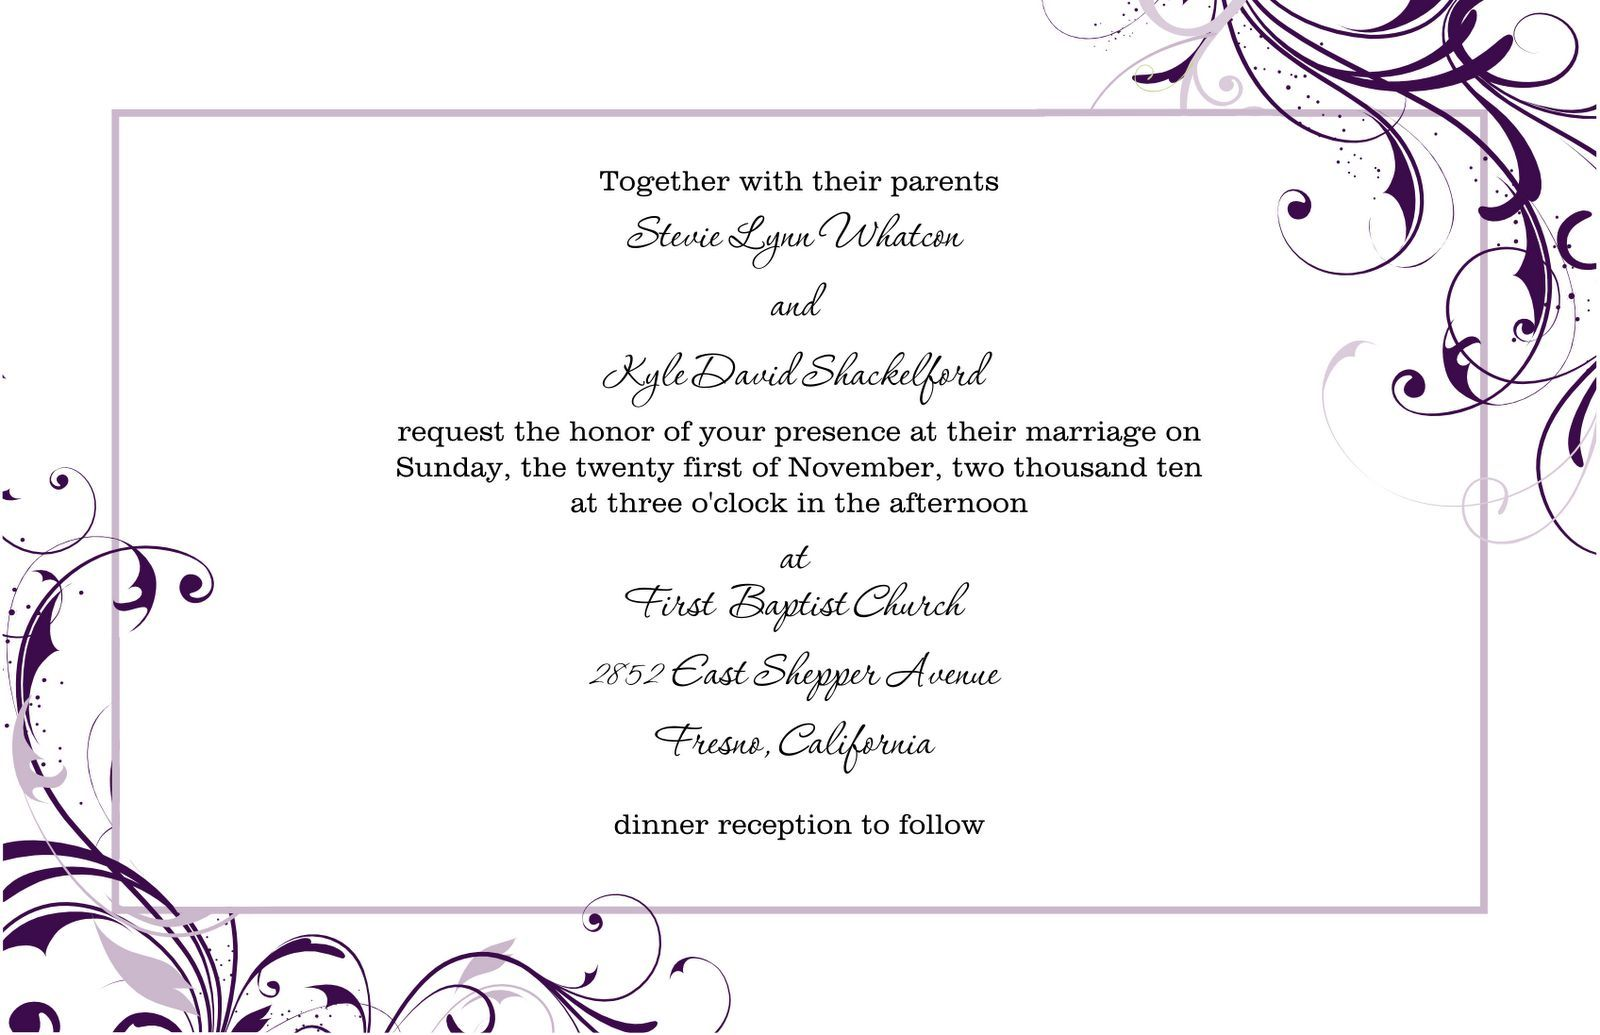 Free Blank Wedding Invitation Templates For Microsoft Word Wedding - Wedding invitation templates: arabic wedding invitation template